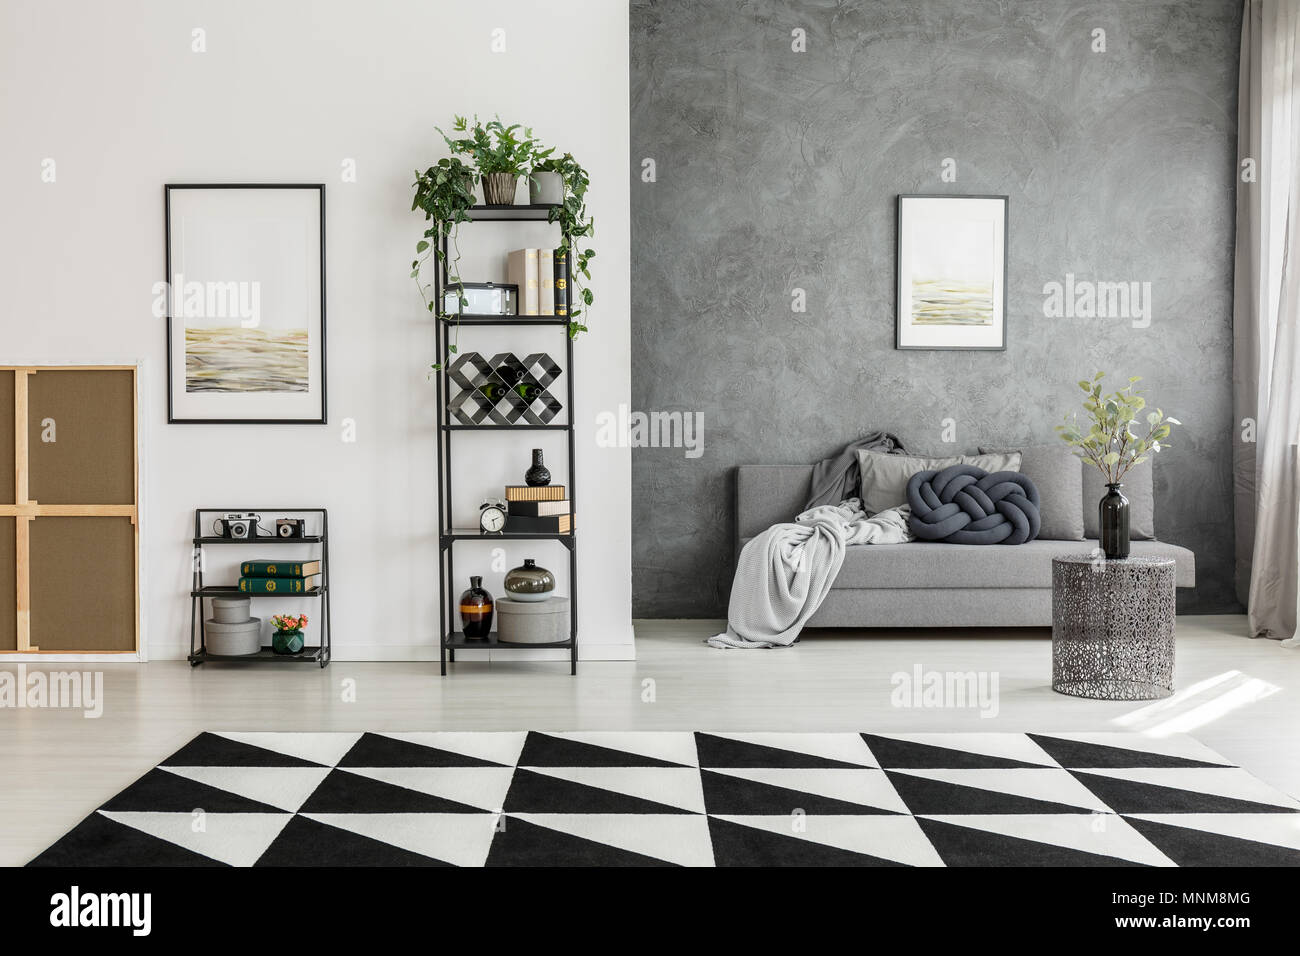 living room color with grey sofa led lights black and white carpet in spacious posters contrast colors walls